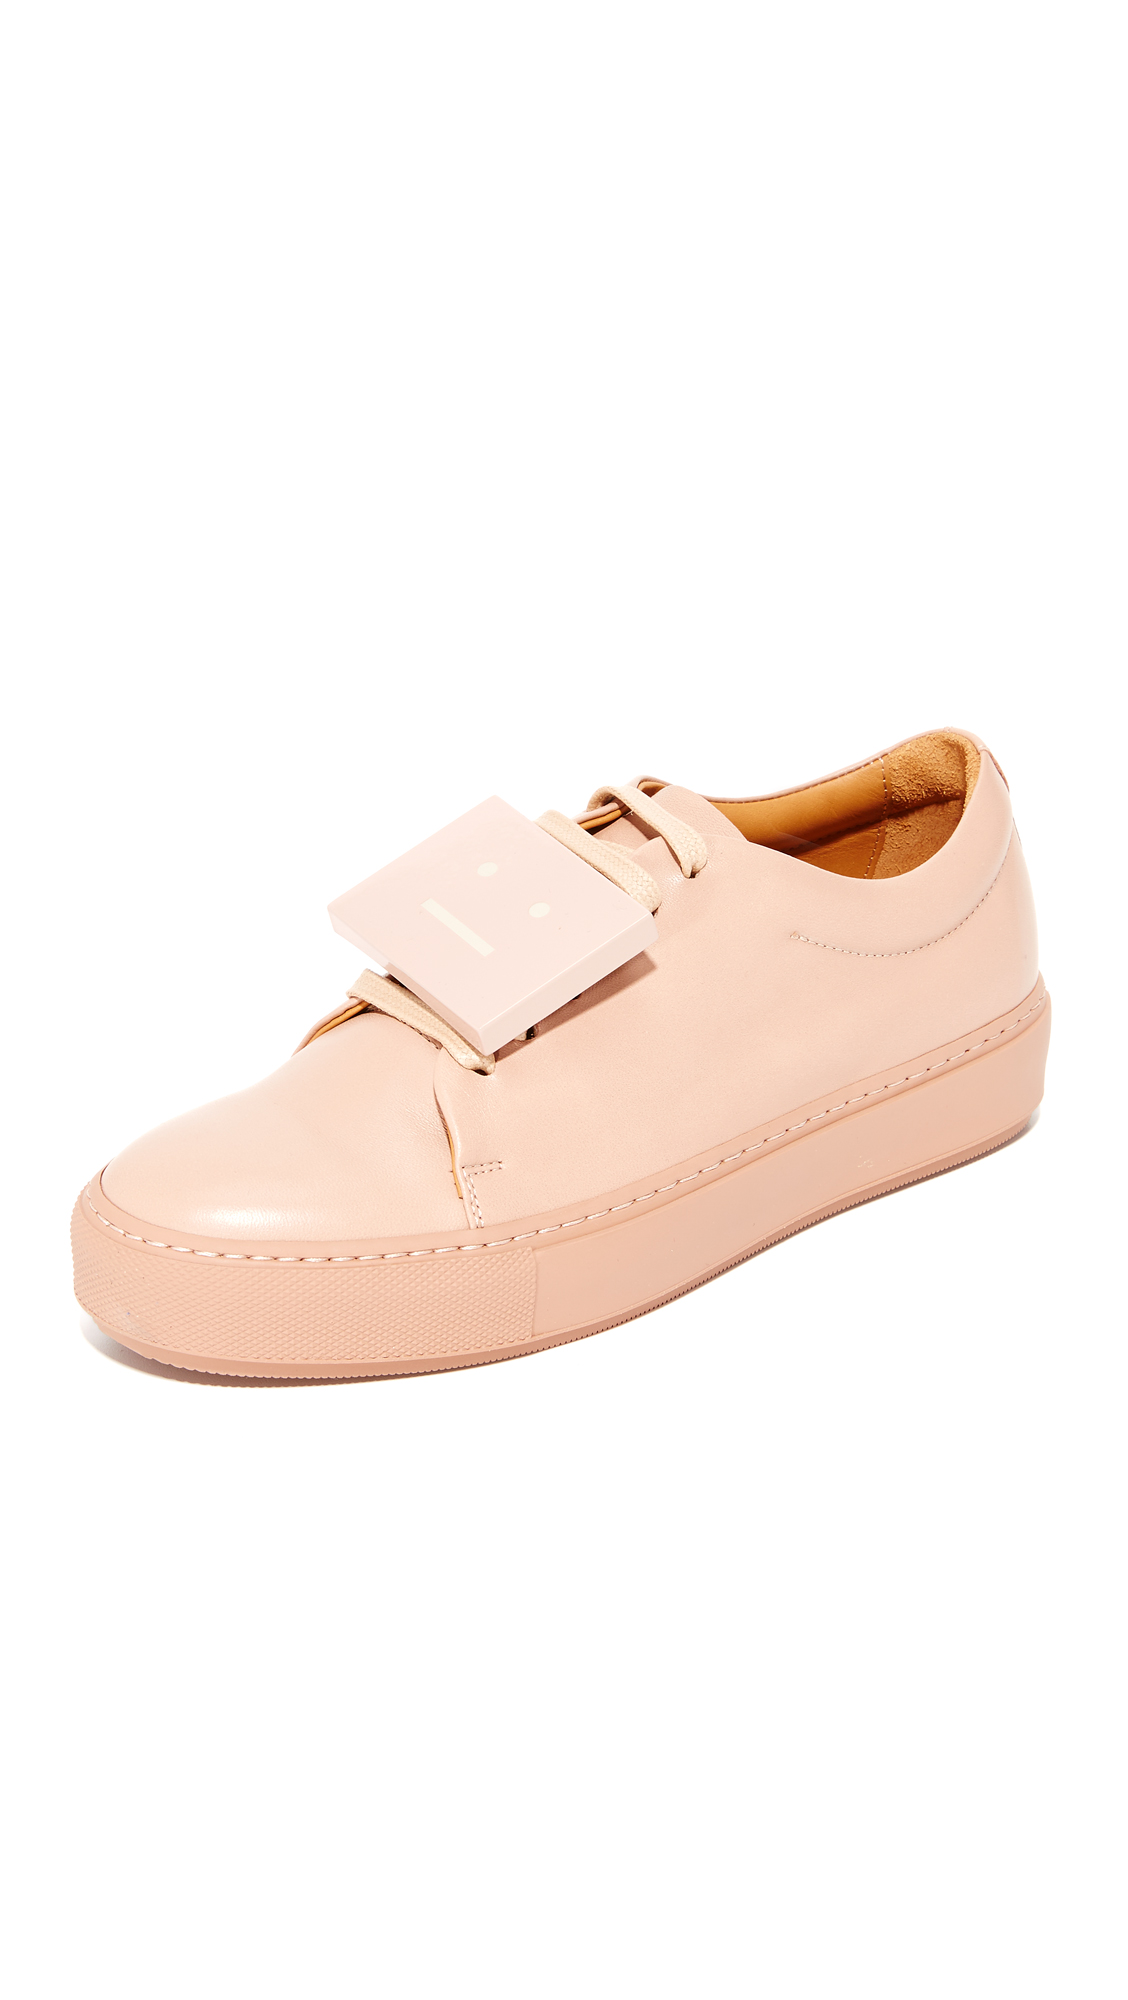 Acne Studios Adriana Sneakers - Dusty Pink at Shopbop